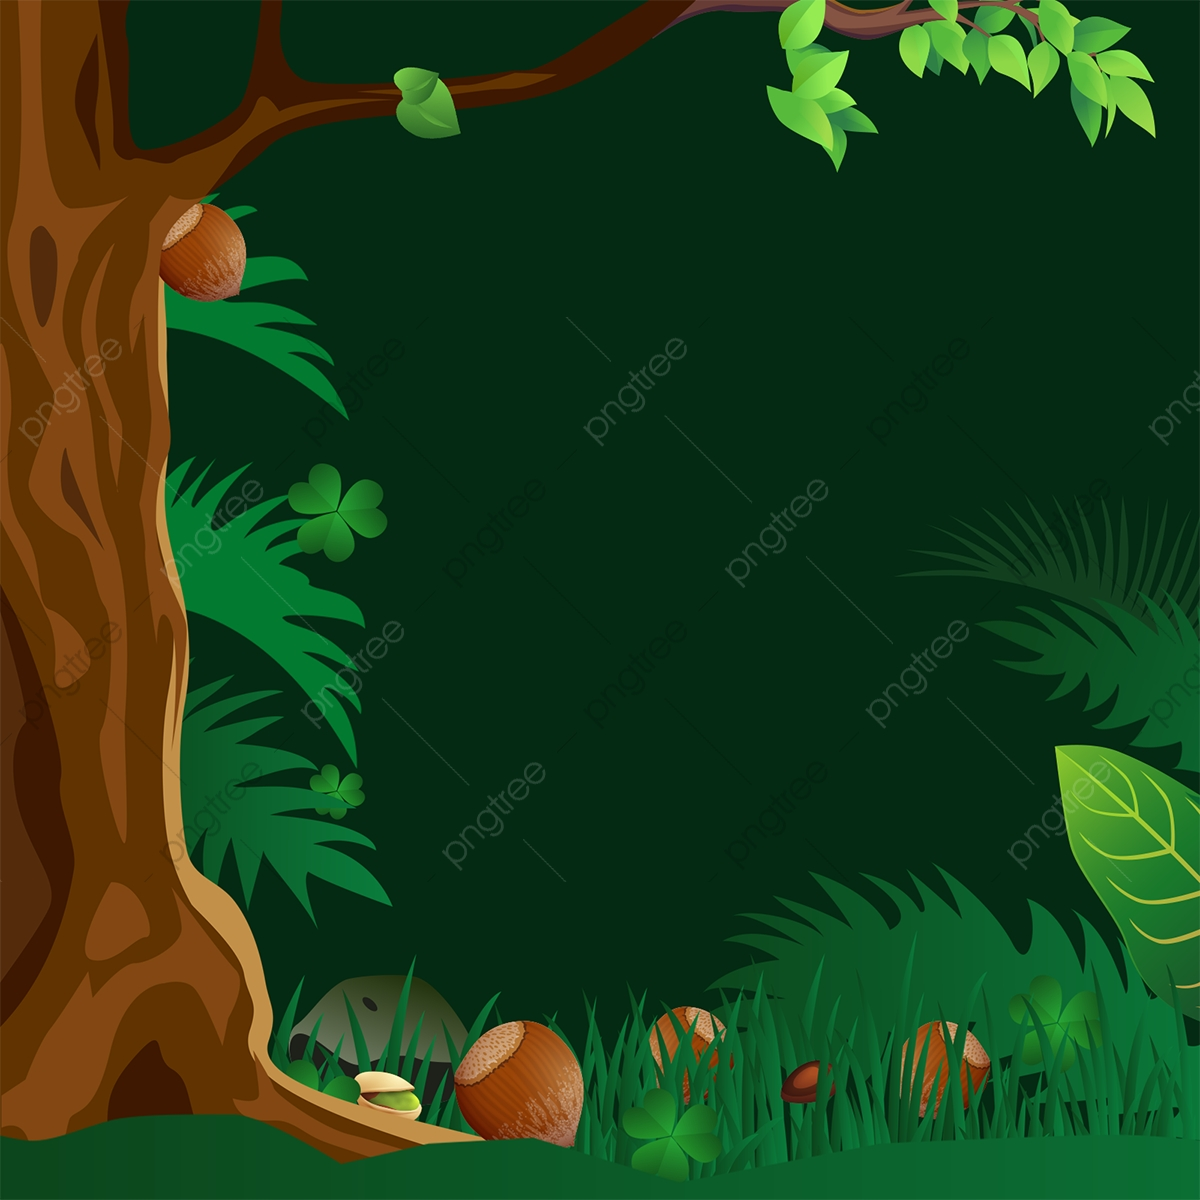 Zoo background green png. Jungle clipart field